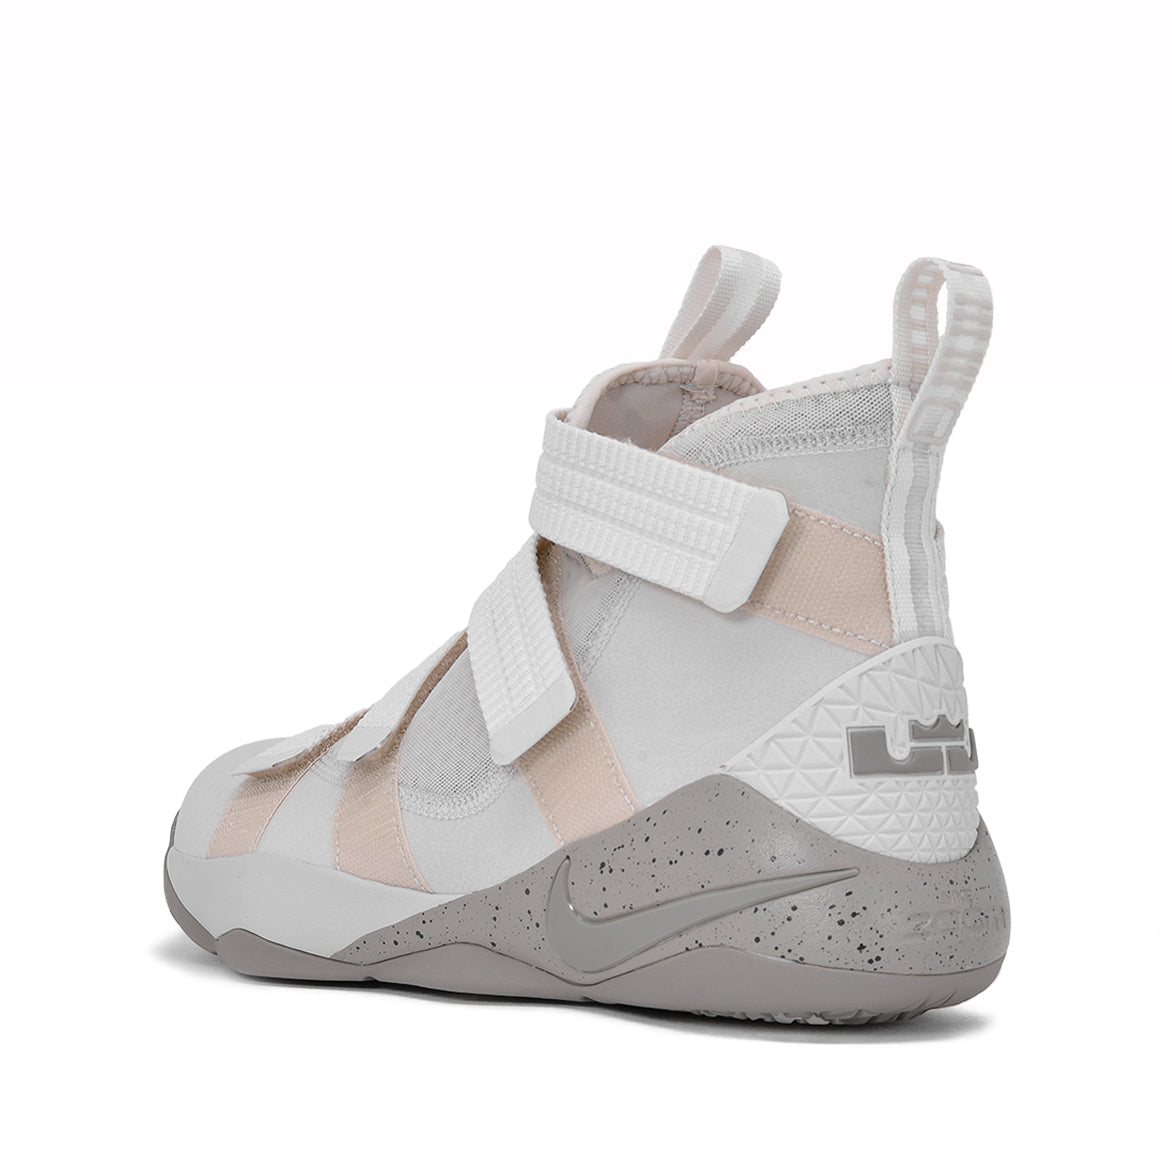 buy popular 086b0 bca1e LEBRON SOLDIER XI SFG - LIGHT BONE / DARK STUCCO